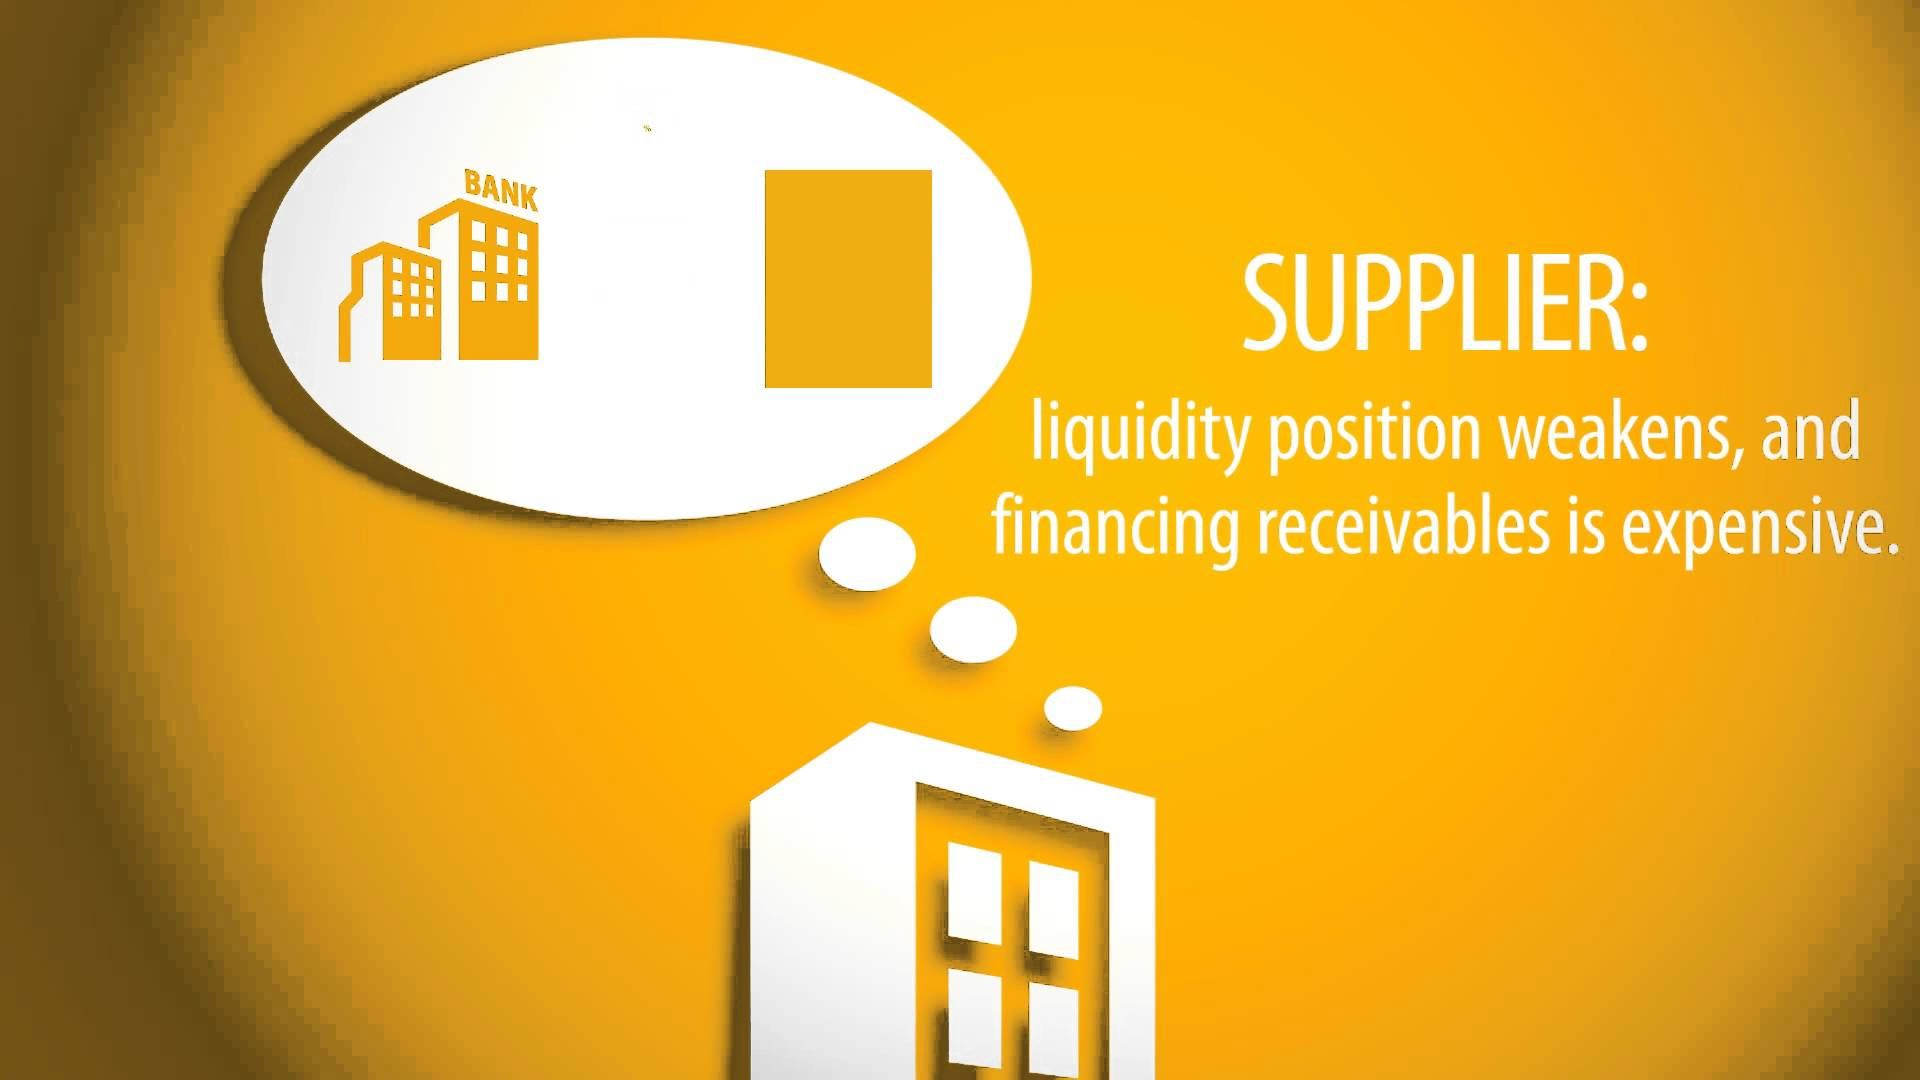 This is how Supply Chain Finance works